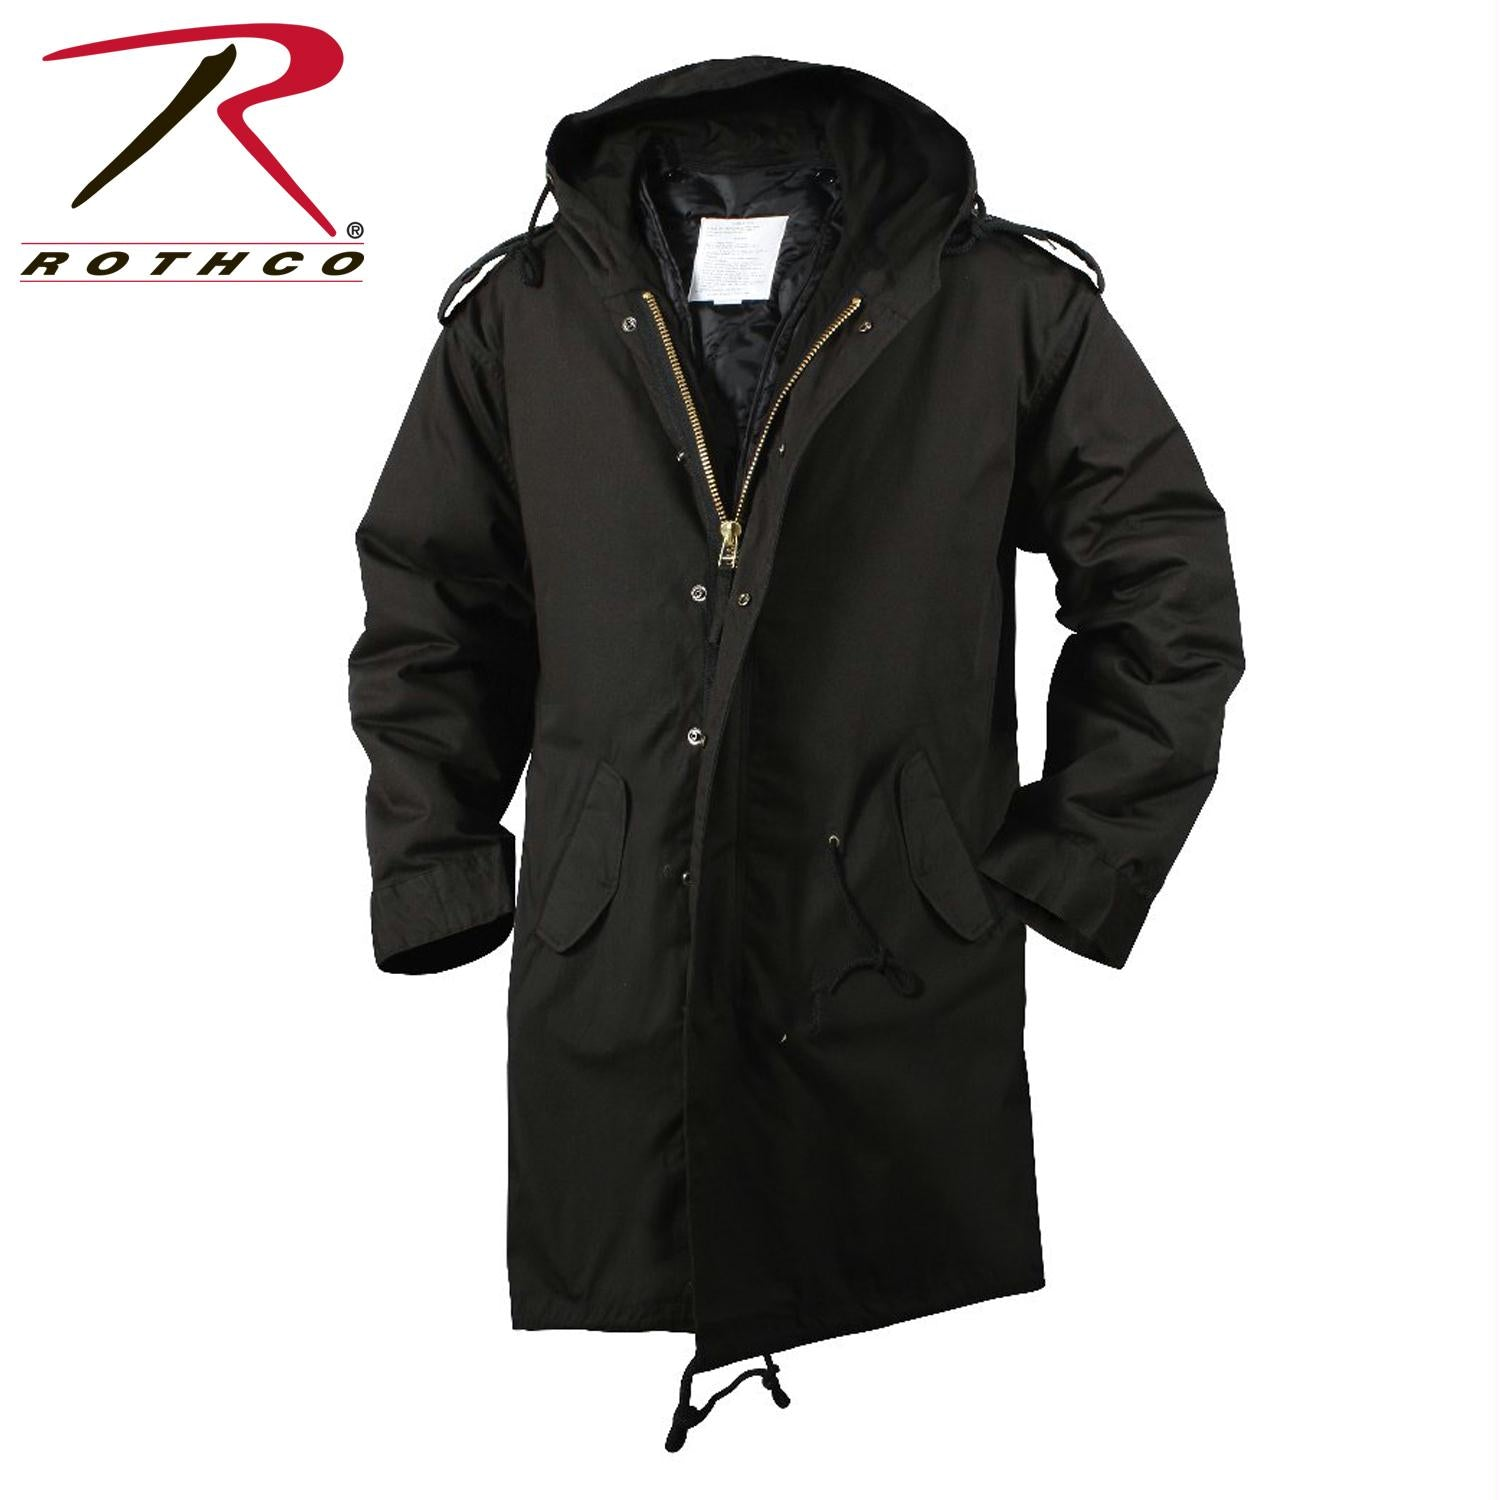 Rothco M-51 Fishtail Parka - Black / XL